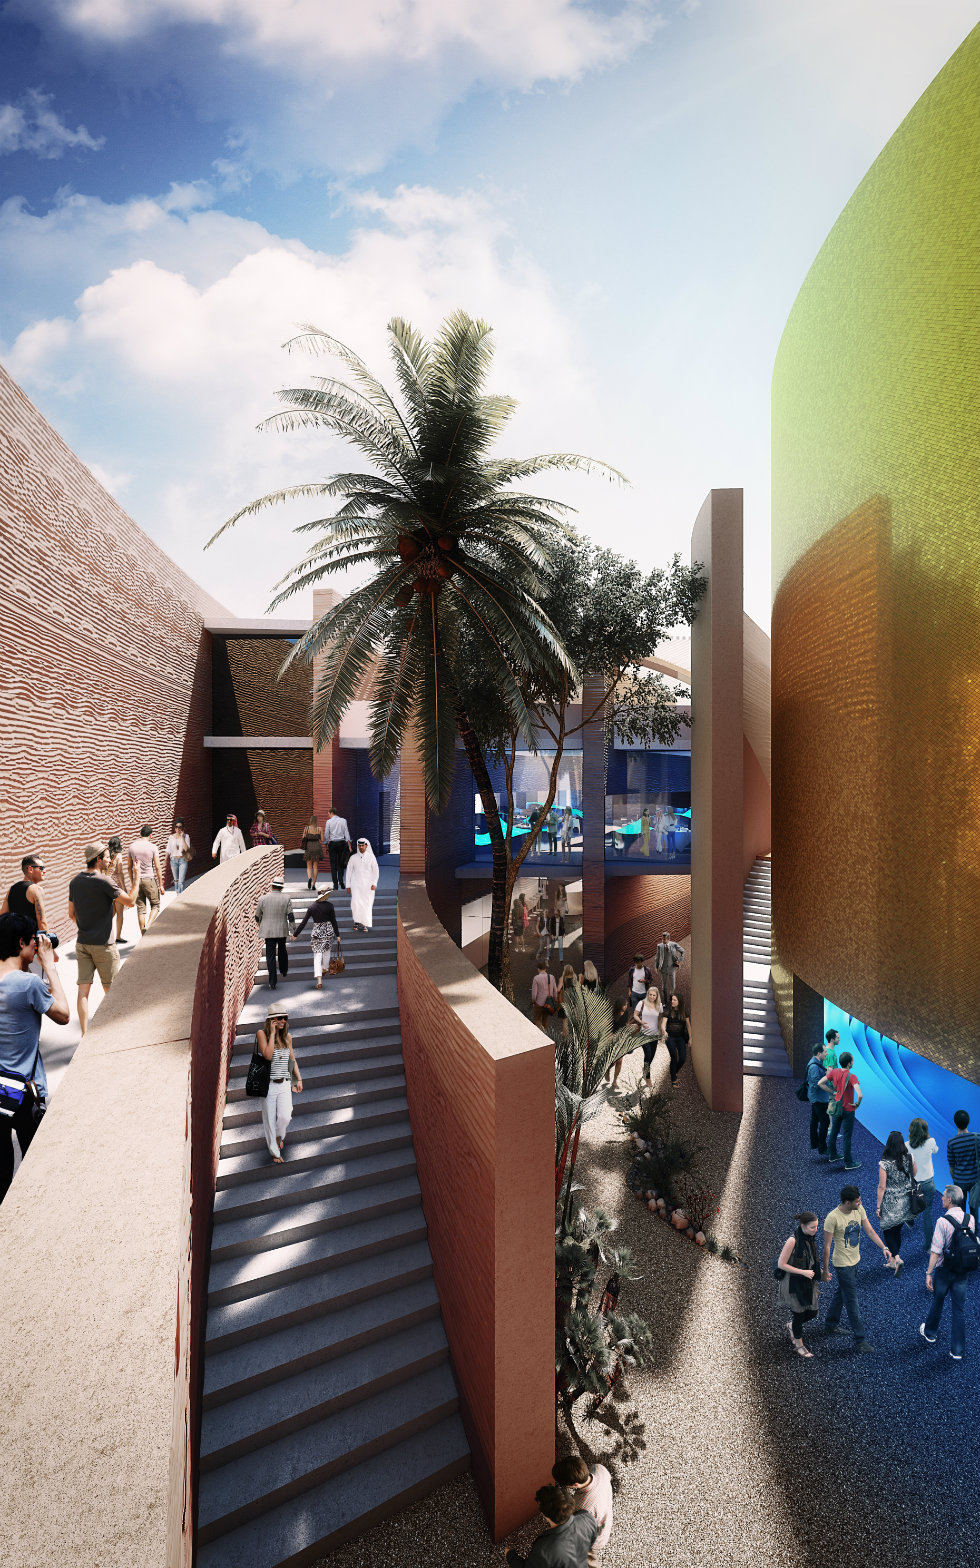 Milan Expo 2015 Foster and Partners designs UAE Pavillion